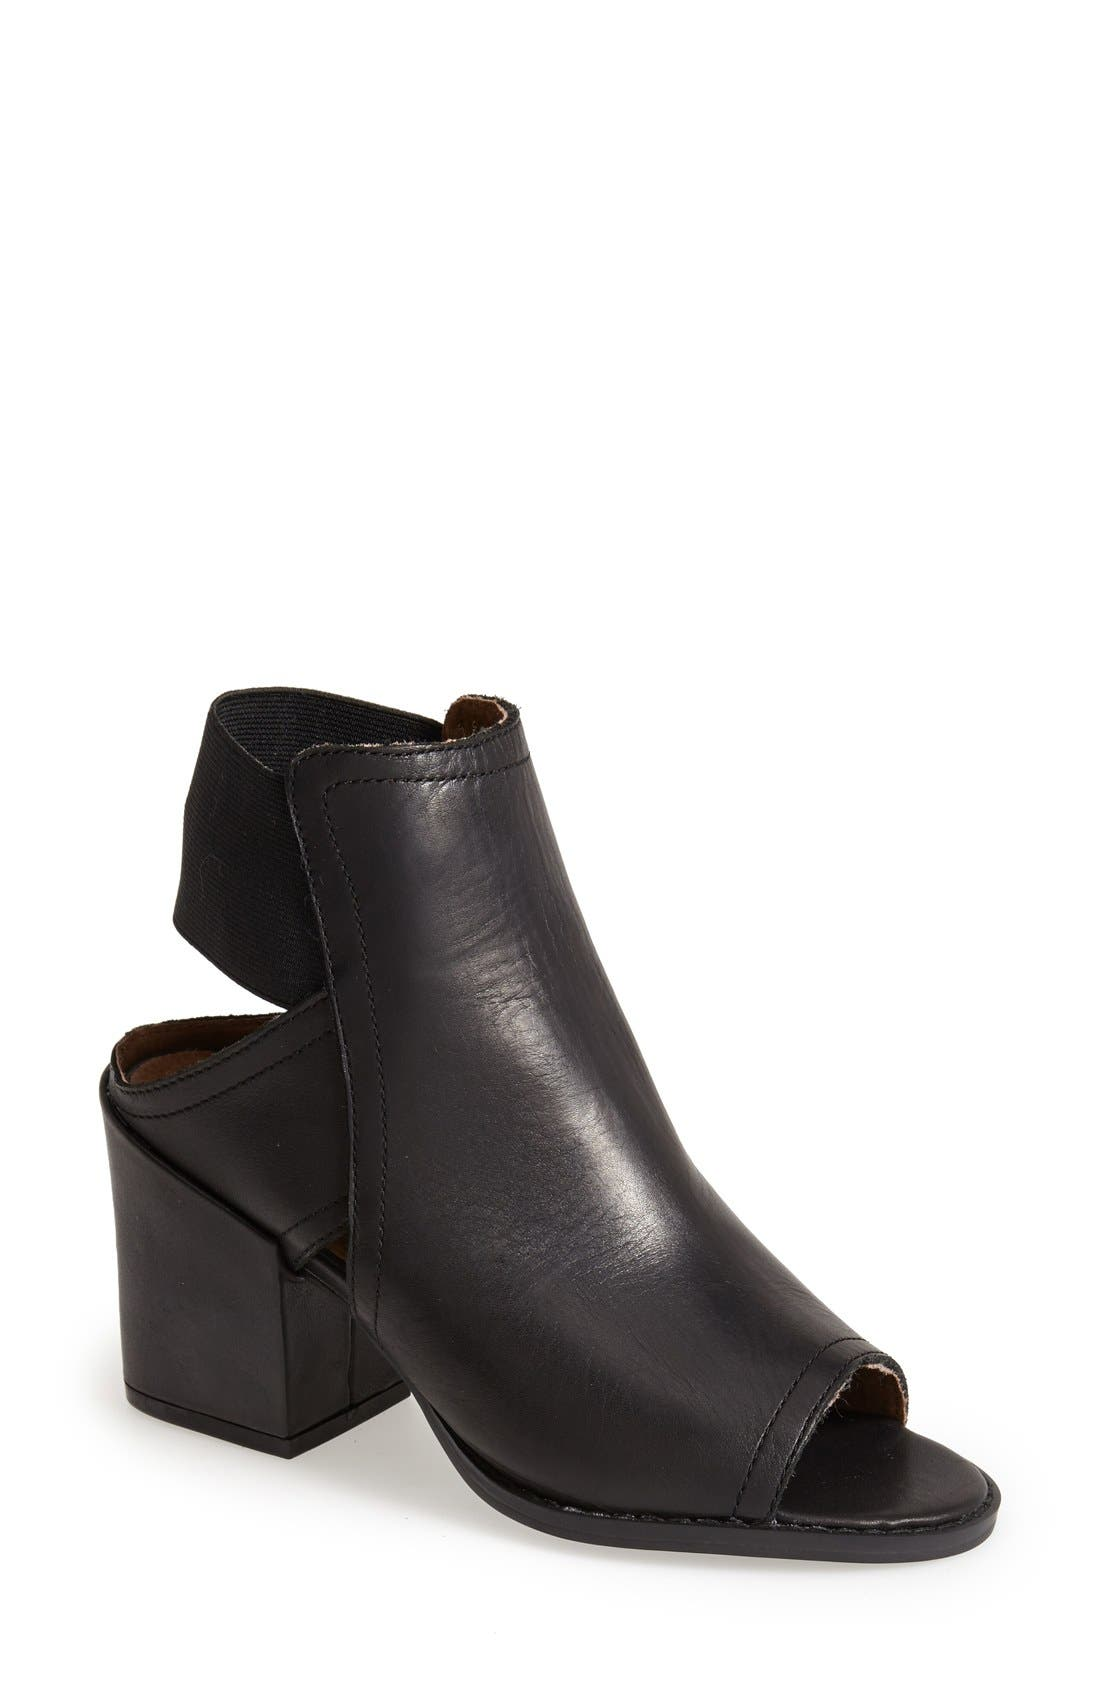 SIXTYSEVEN, 'Polly' Open Toe Bootie, Main thumbnail 1, color, 001